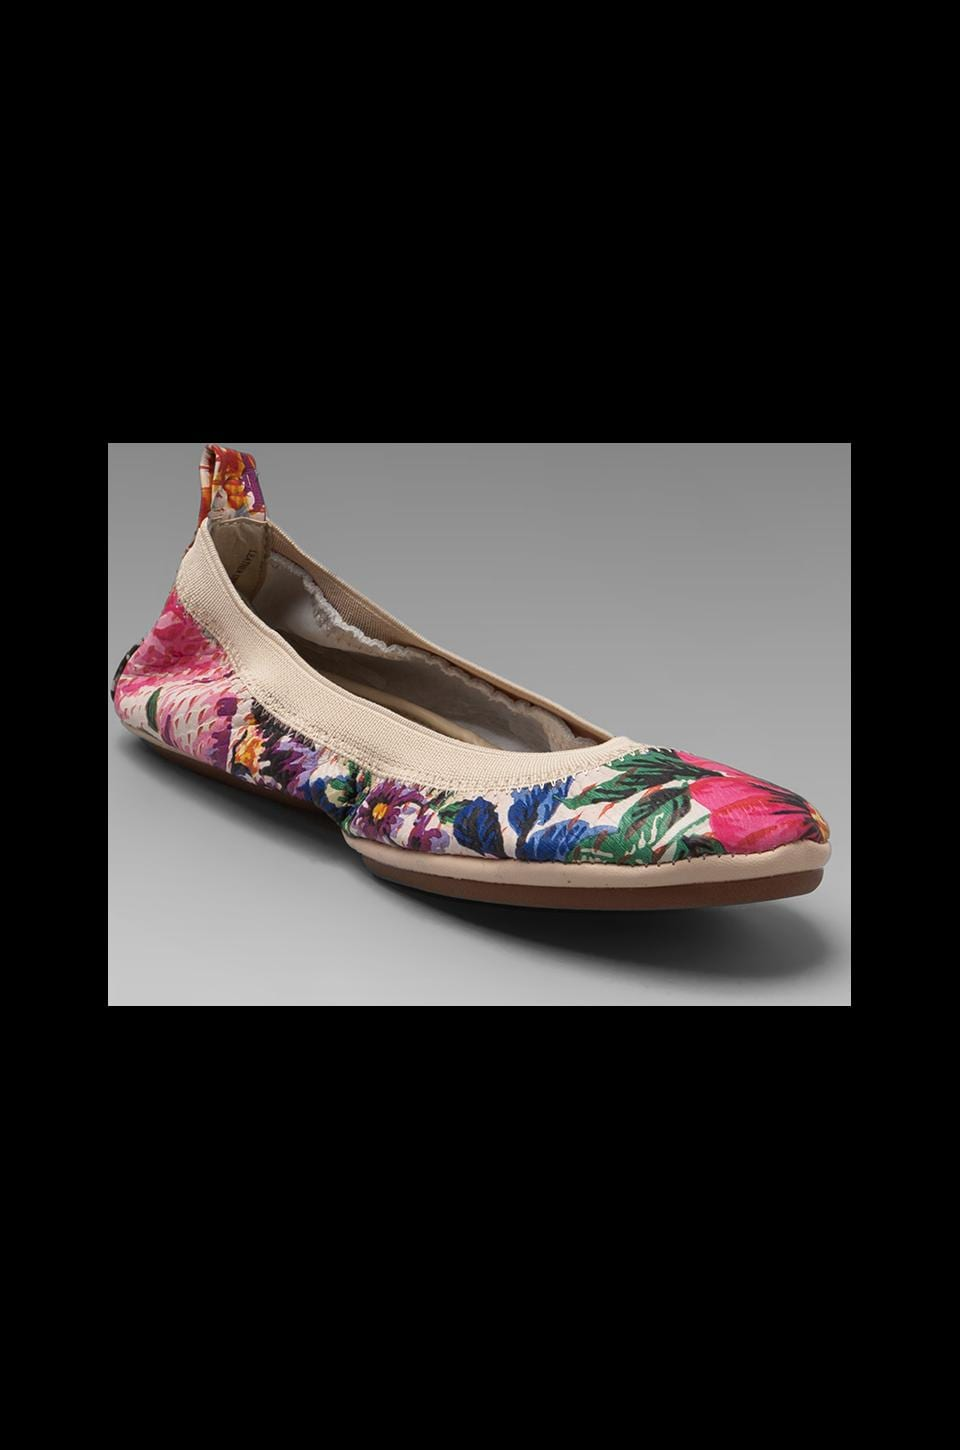 Yosi Samra Antique Floral Printed Flats in Orange Island